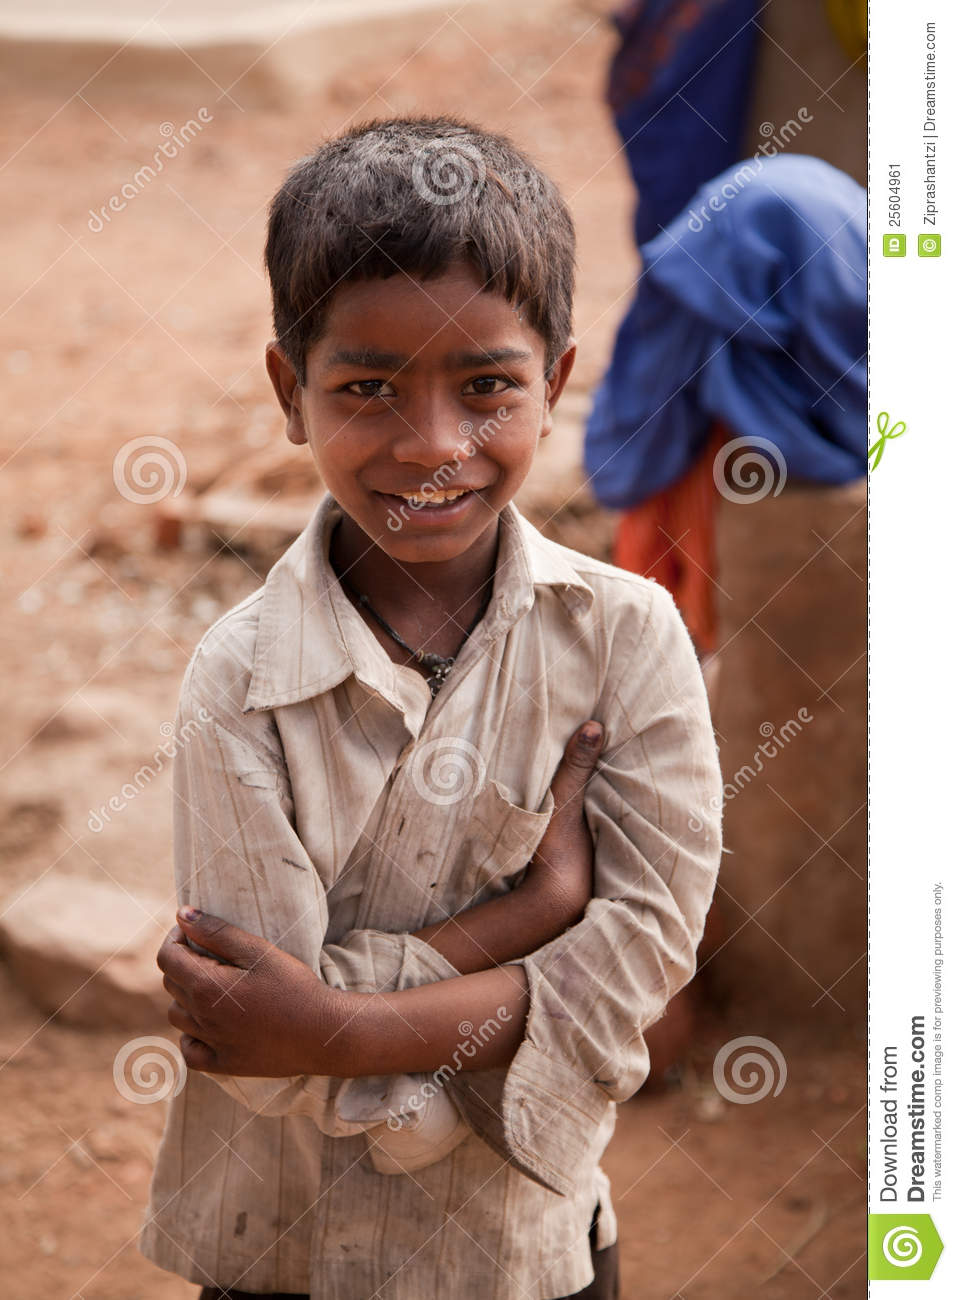 Innocent Happy Indian Child Editorial Photo Image 25604961